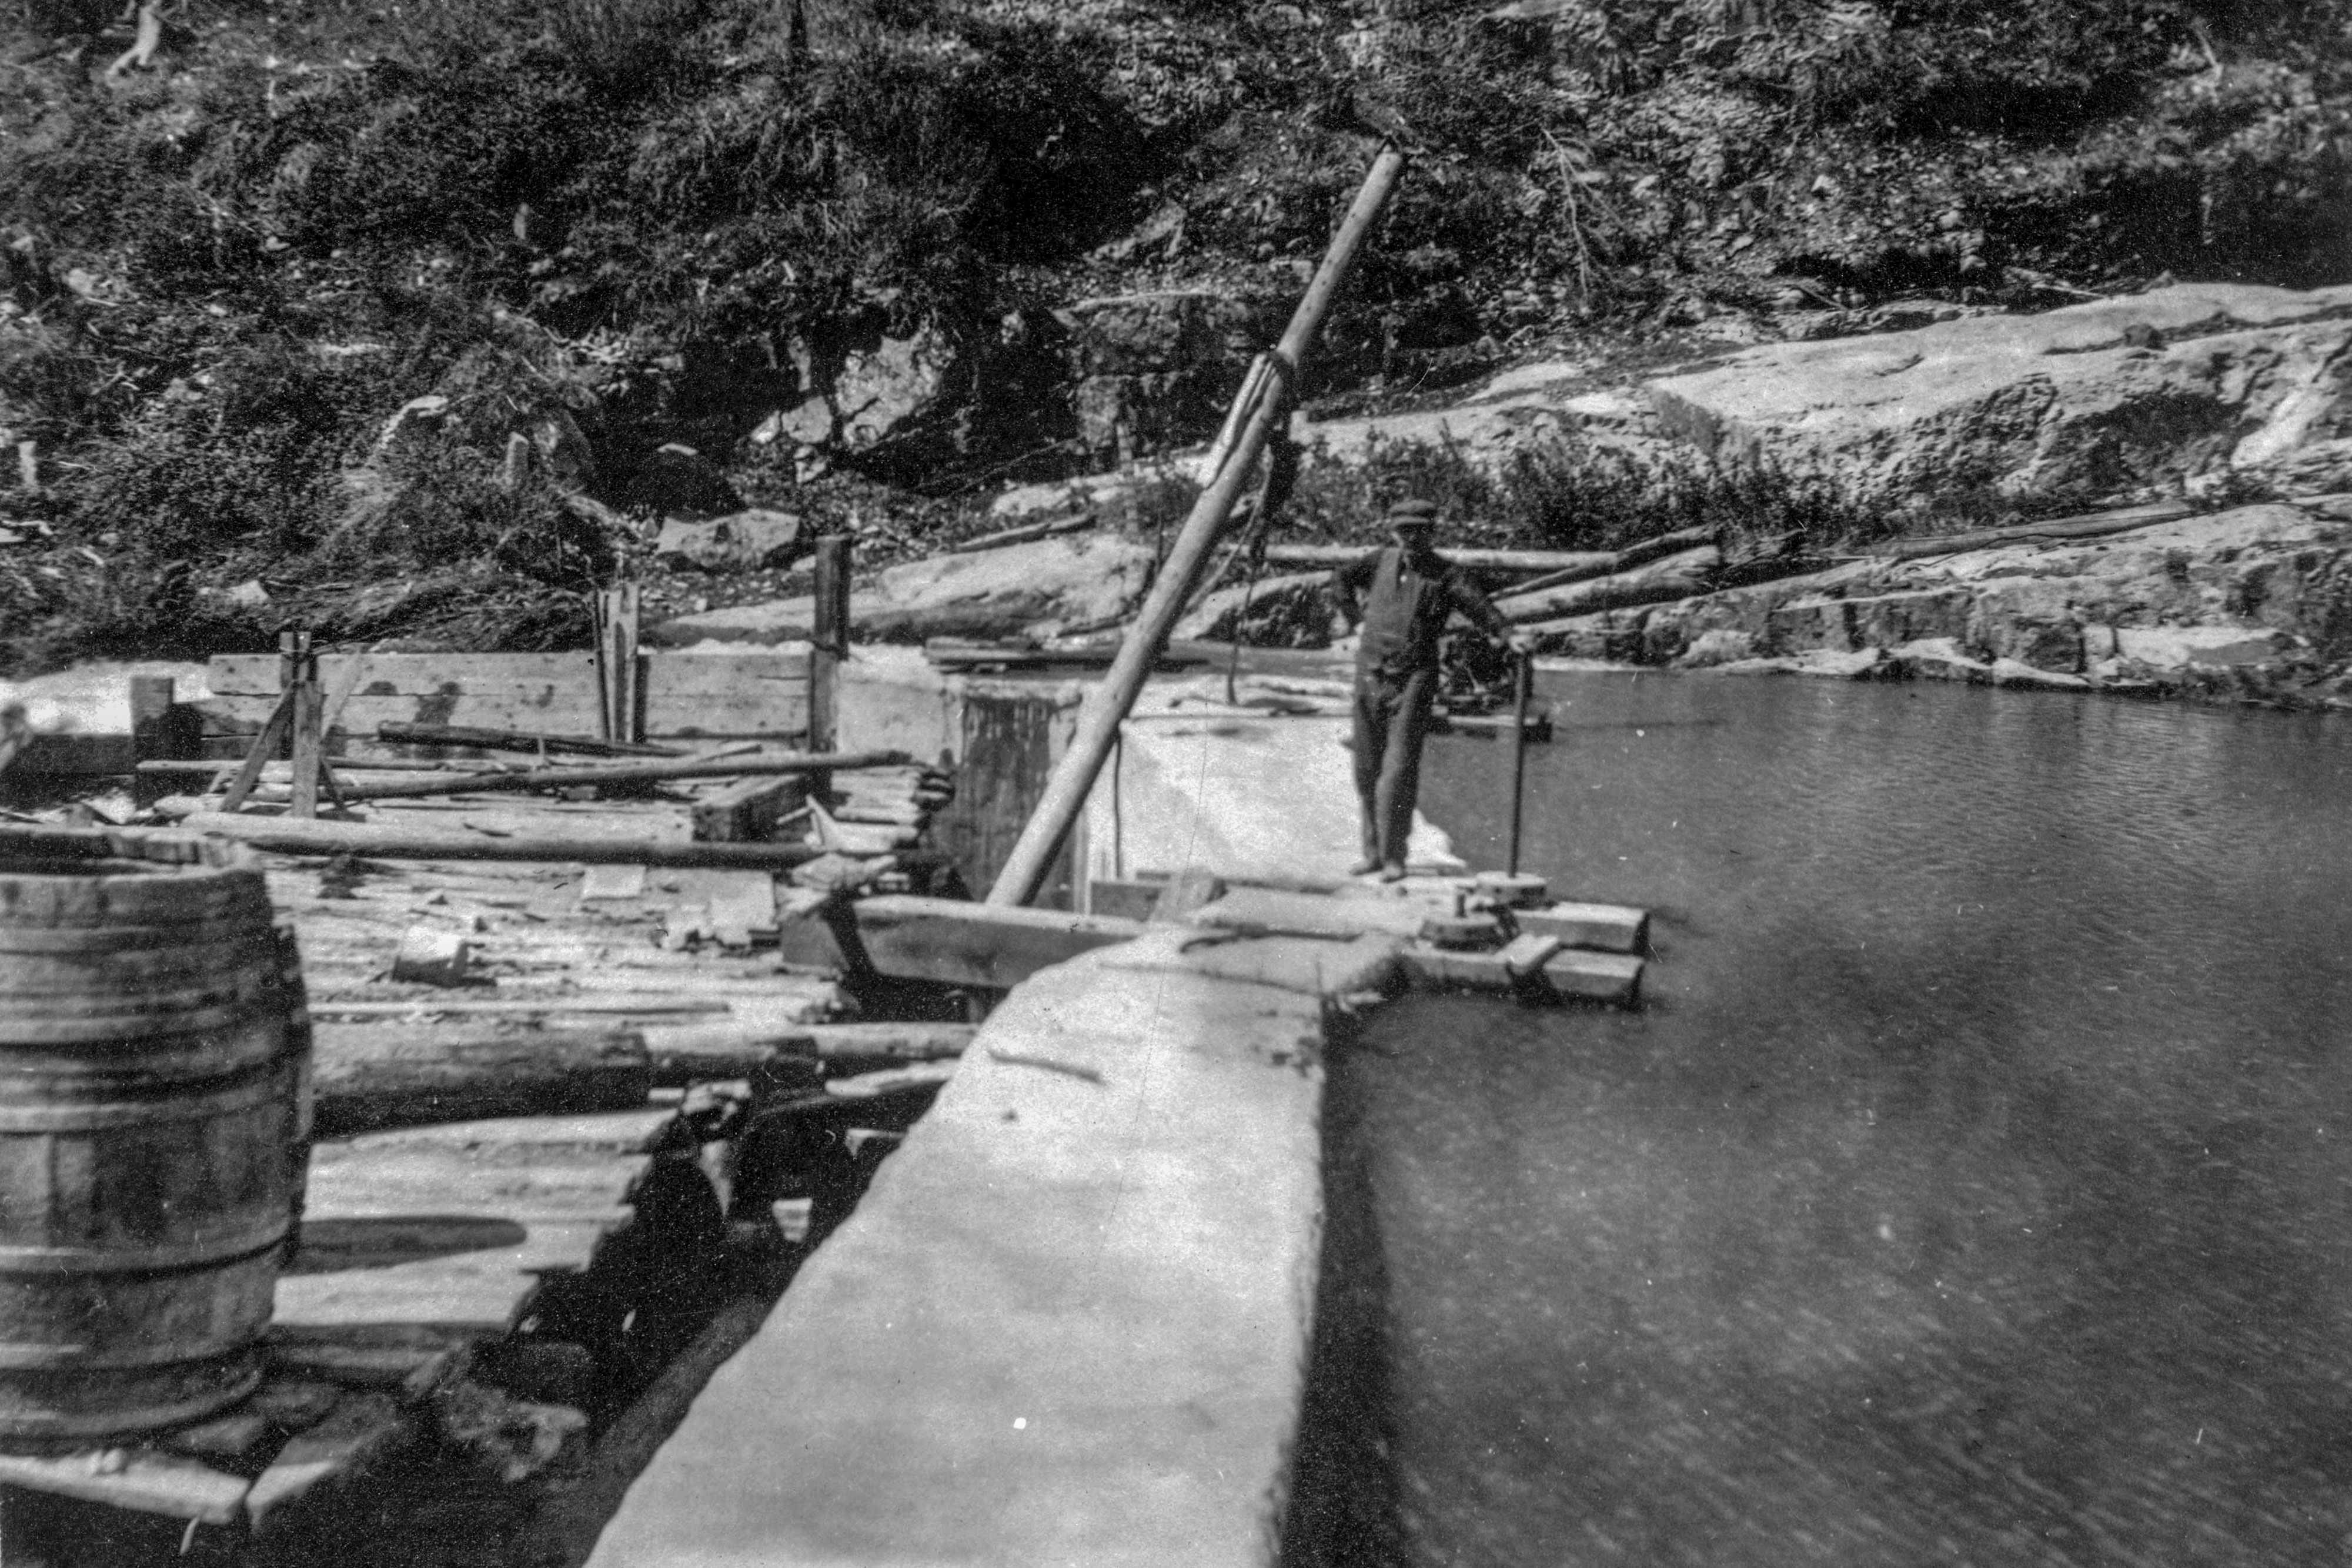 <p>A man poses by the spillway of the Hidden Treasure Dam which is adjacent to the Hidden Treasure Mine and Mill near Lake City, Hinsdale County, Colo., sometime between 1920-1930.</p>